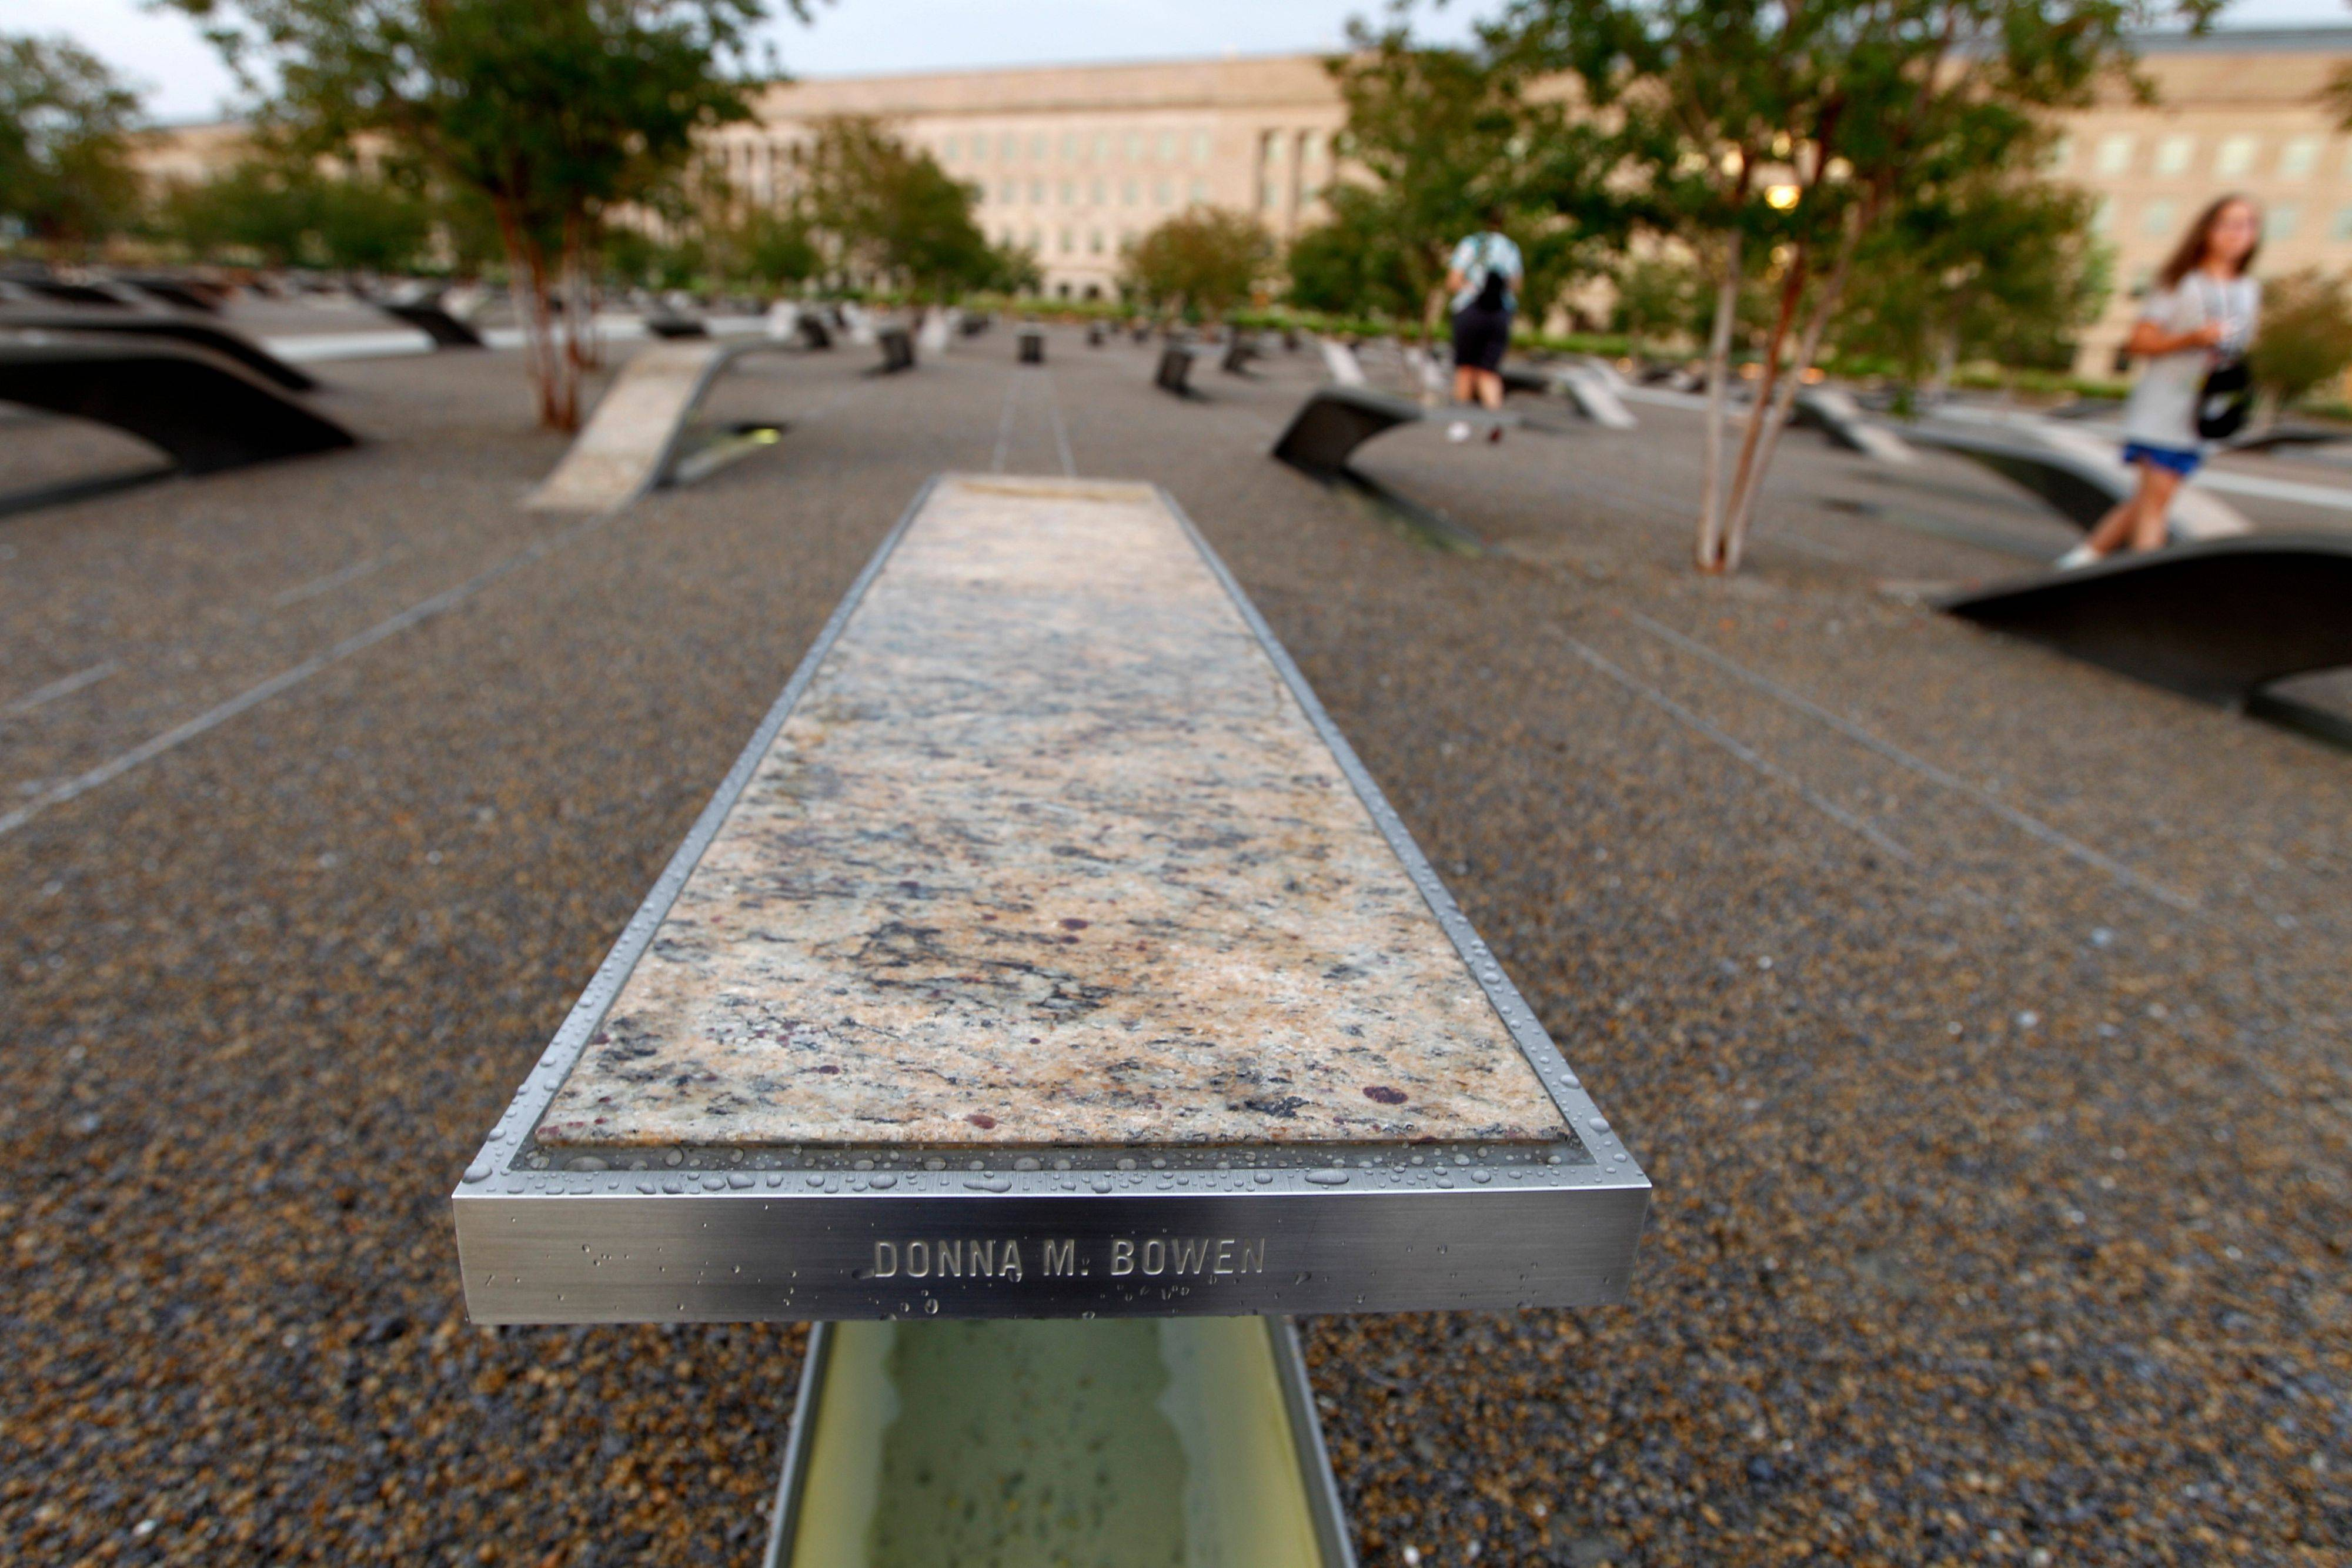 A bench inscribed with the name Donna M. Bowen is just one of 184 benches at the Pentagon Memorial in Arlington, Va.